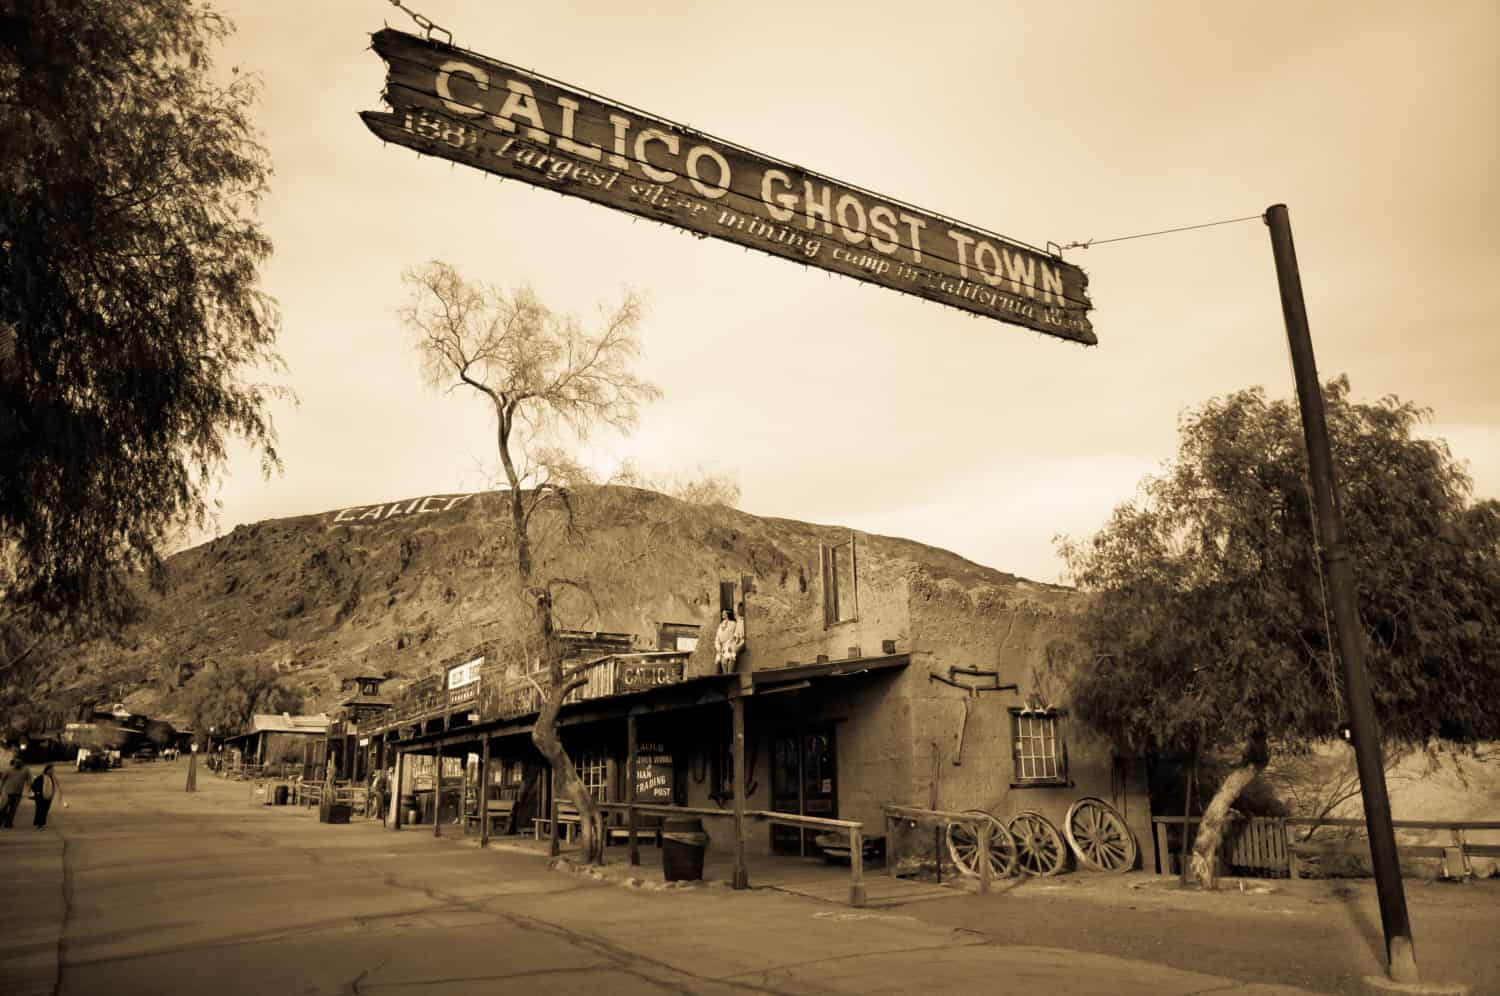 A picture of a street in Calico Ghost Town, suitable for pets, California